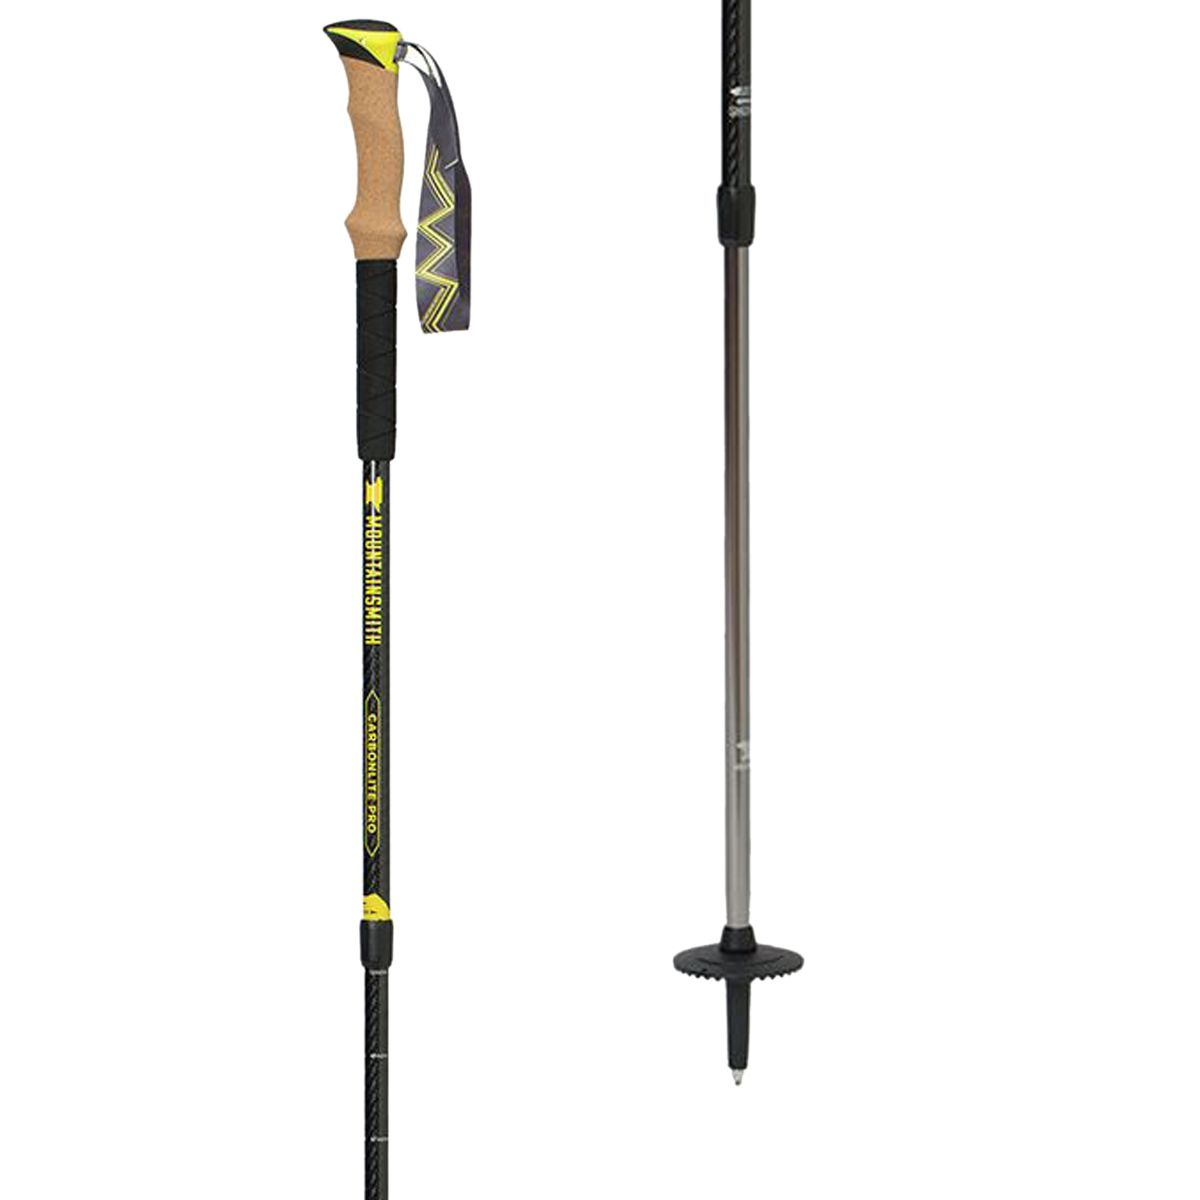 Mountainsmith Carbonlite Pro